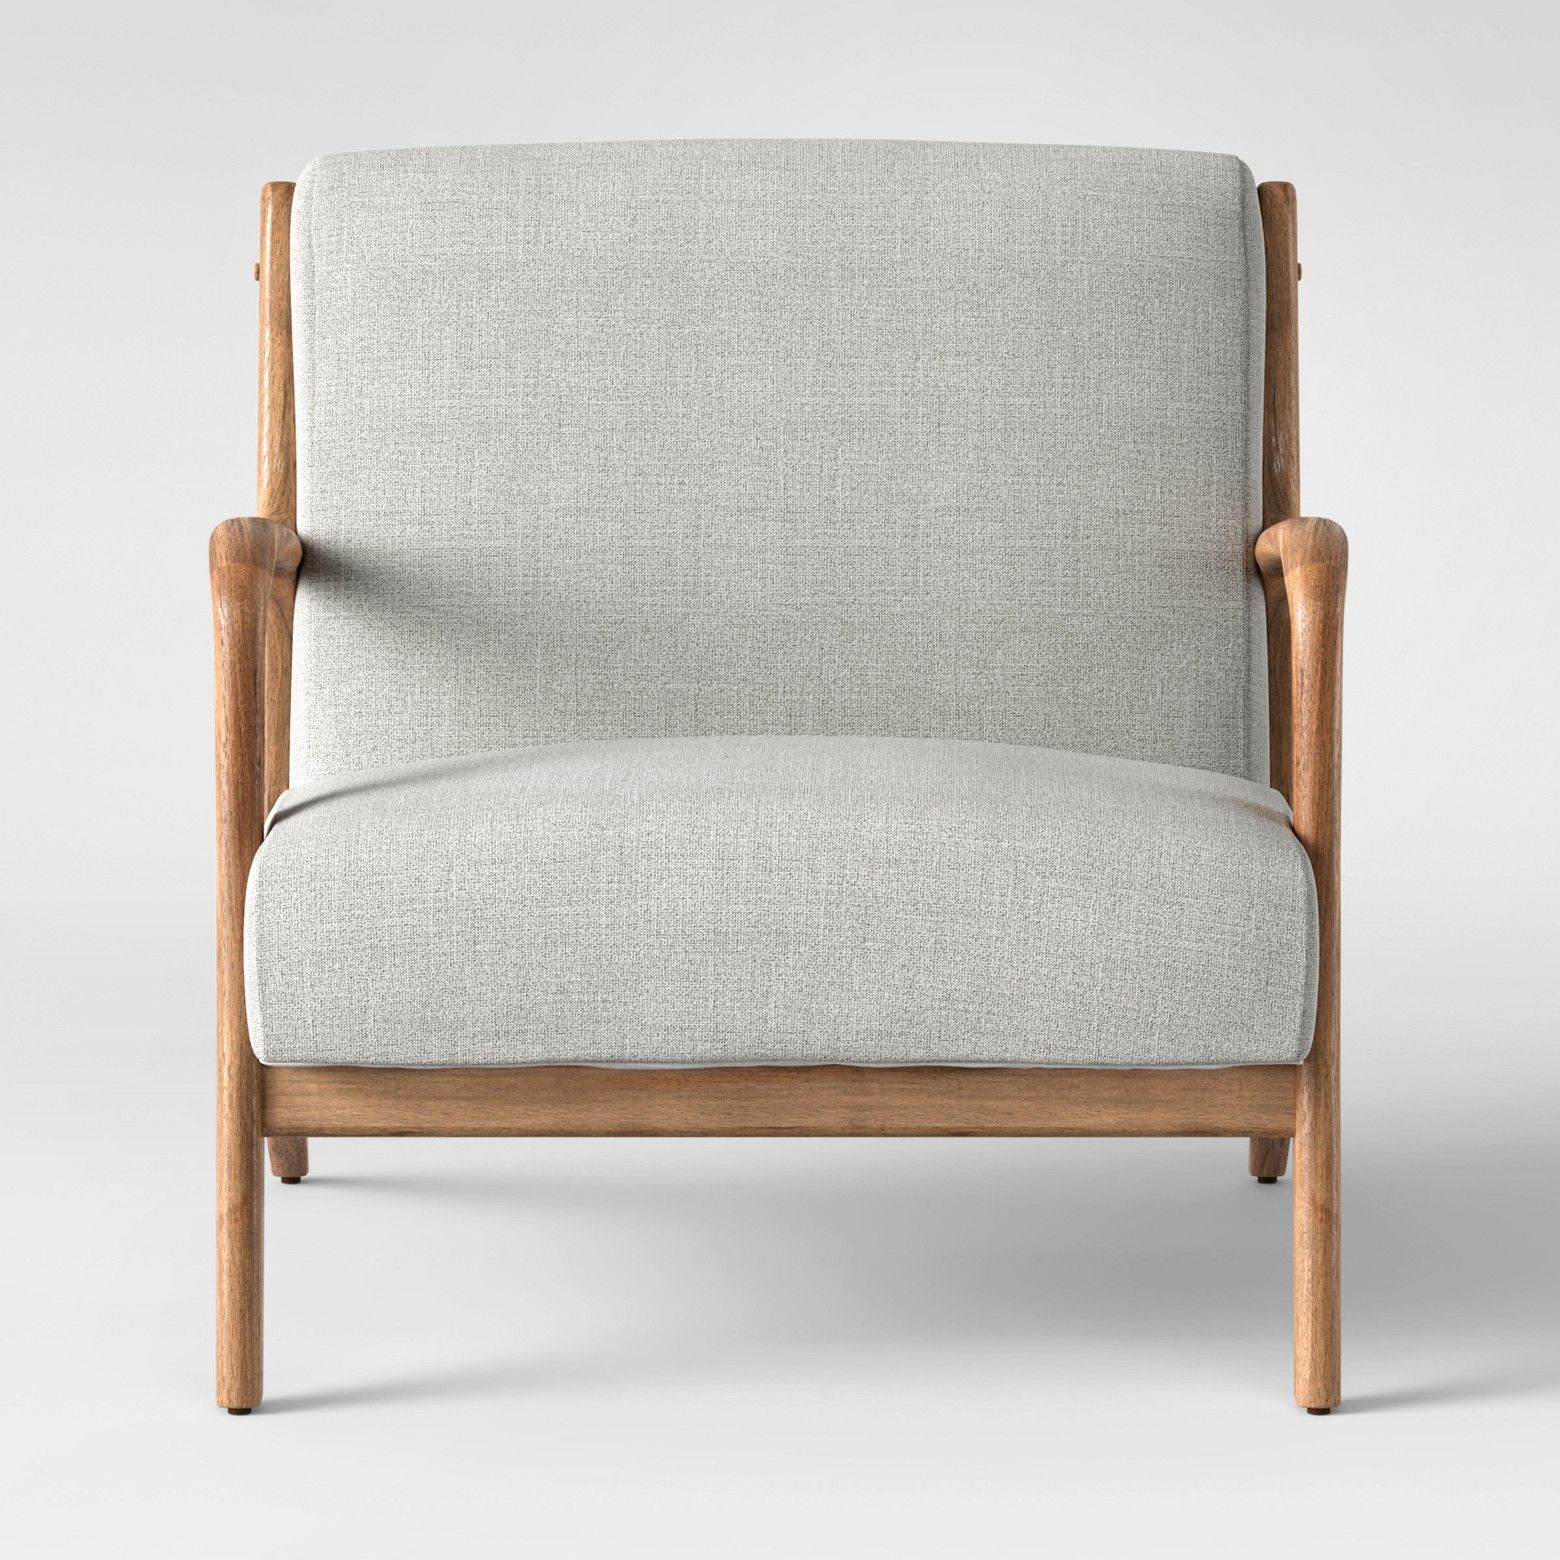 Esters Wood Arm Chair - Light Gray - Project 62 | Solid wood, Wood ...